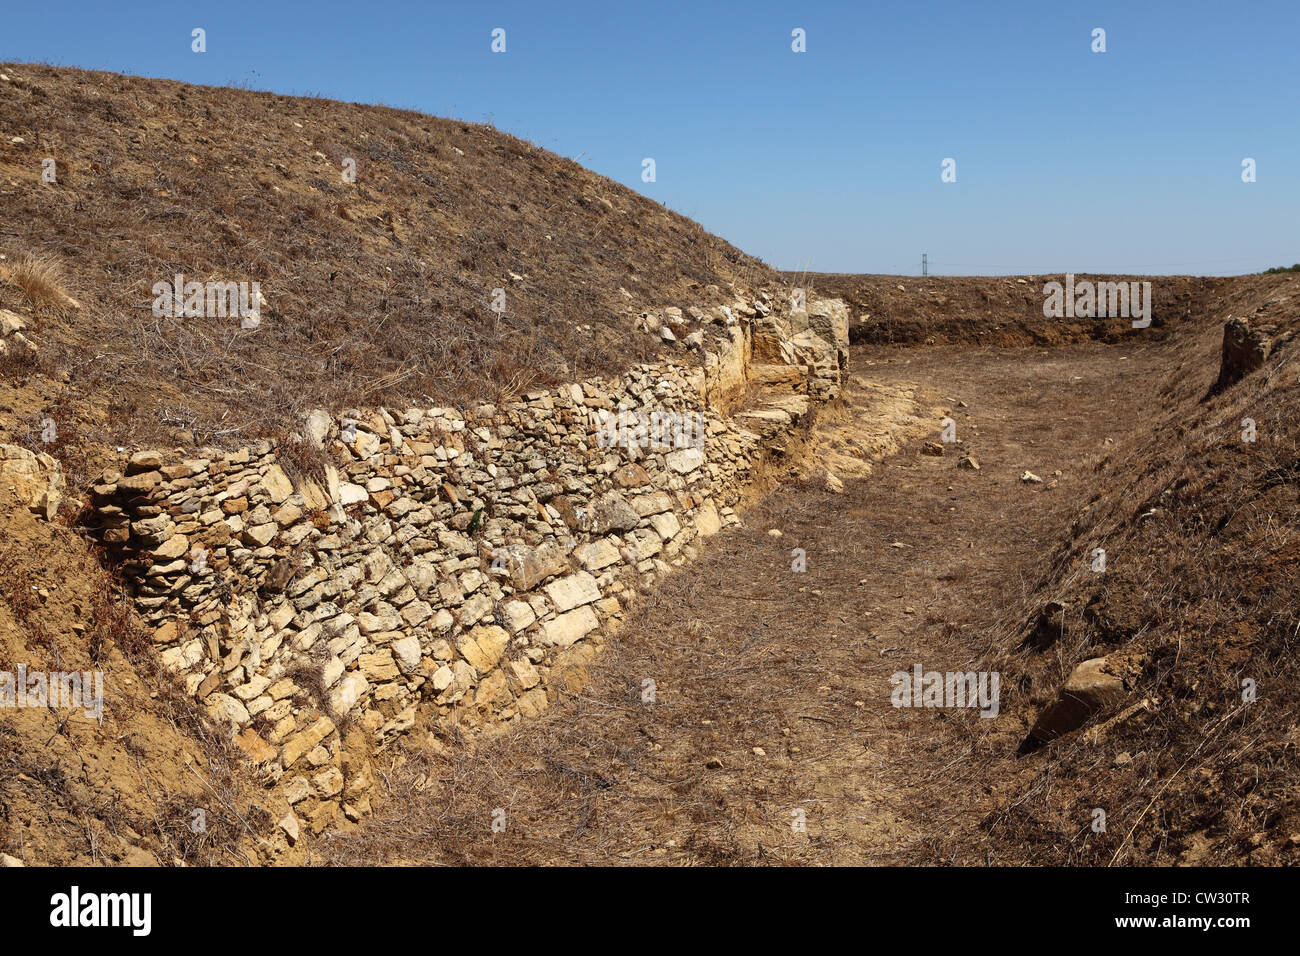 Ditch and wall at Forte do Cego, fort number 9 of the 152 forts and earthworks of the Lines of Torres Vedras - Stock Image